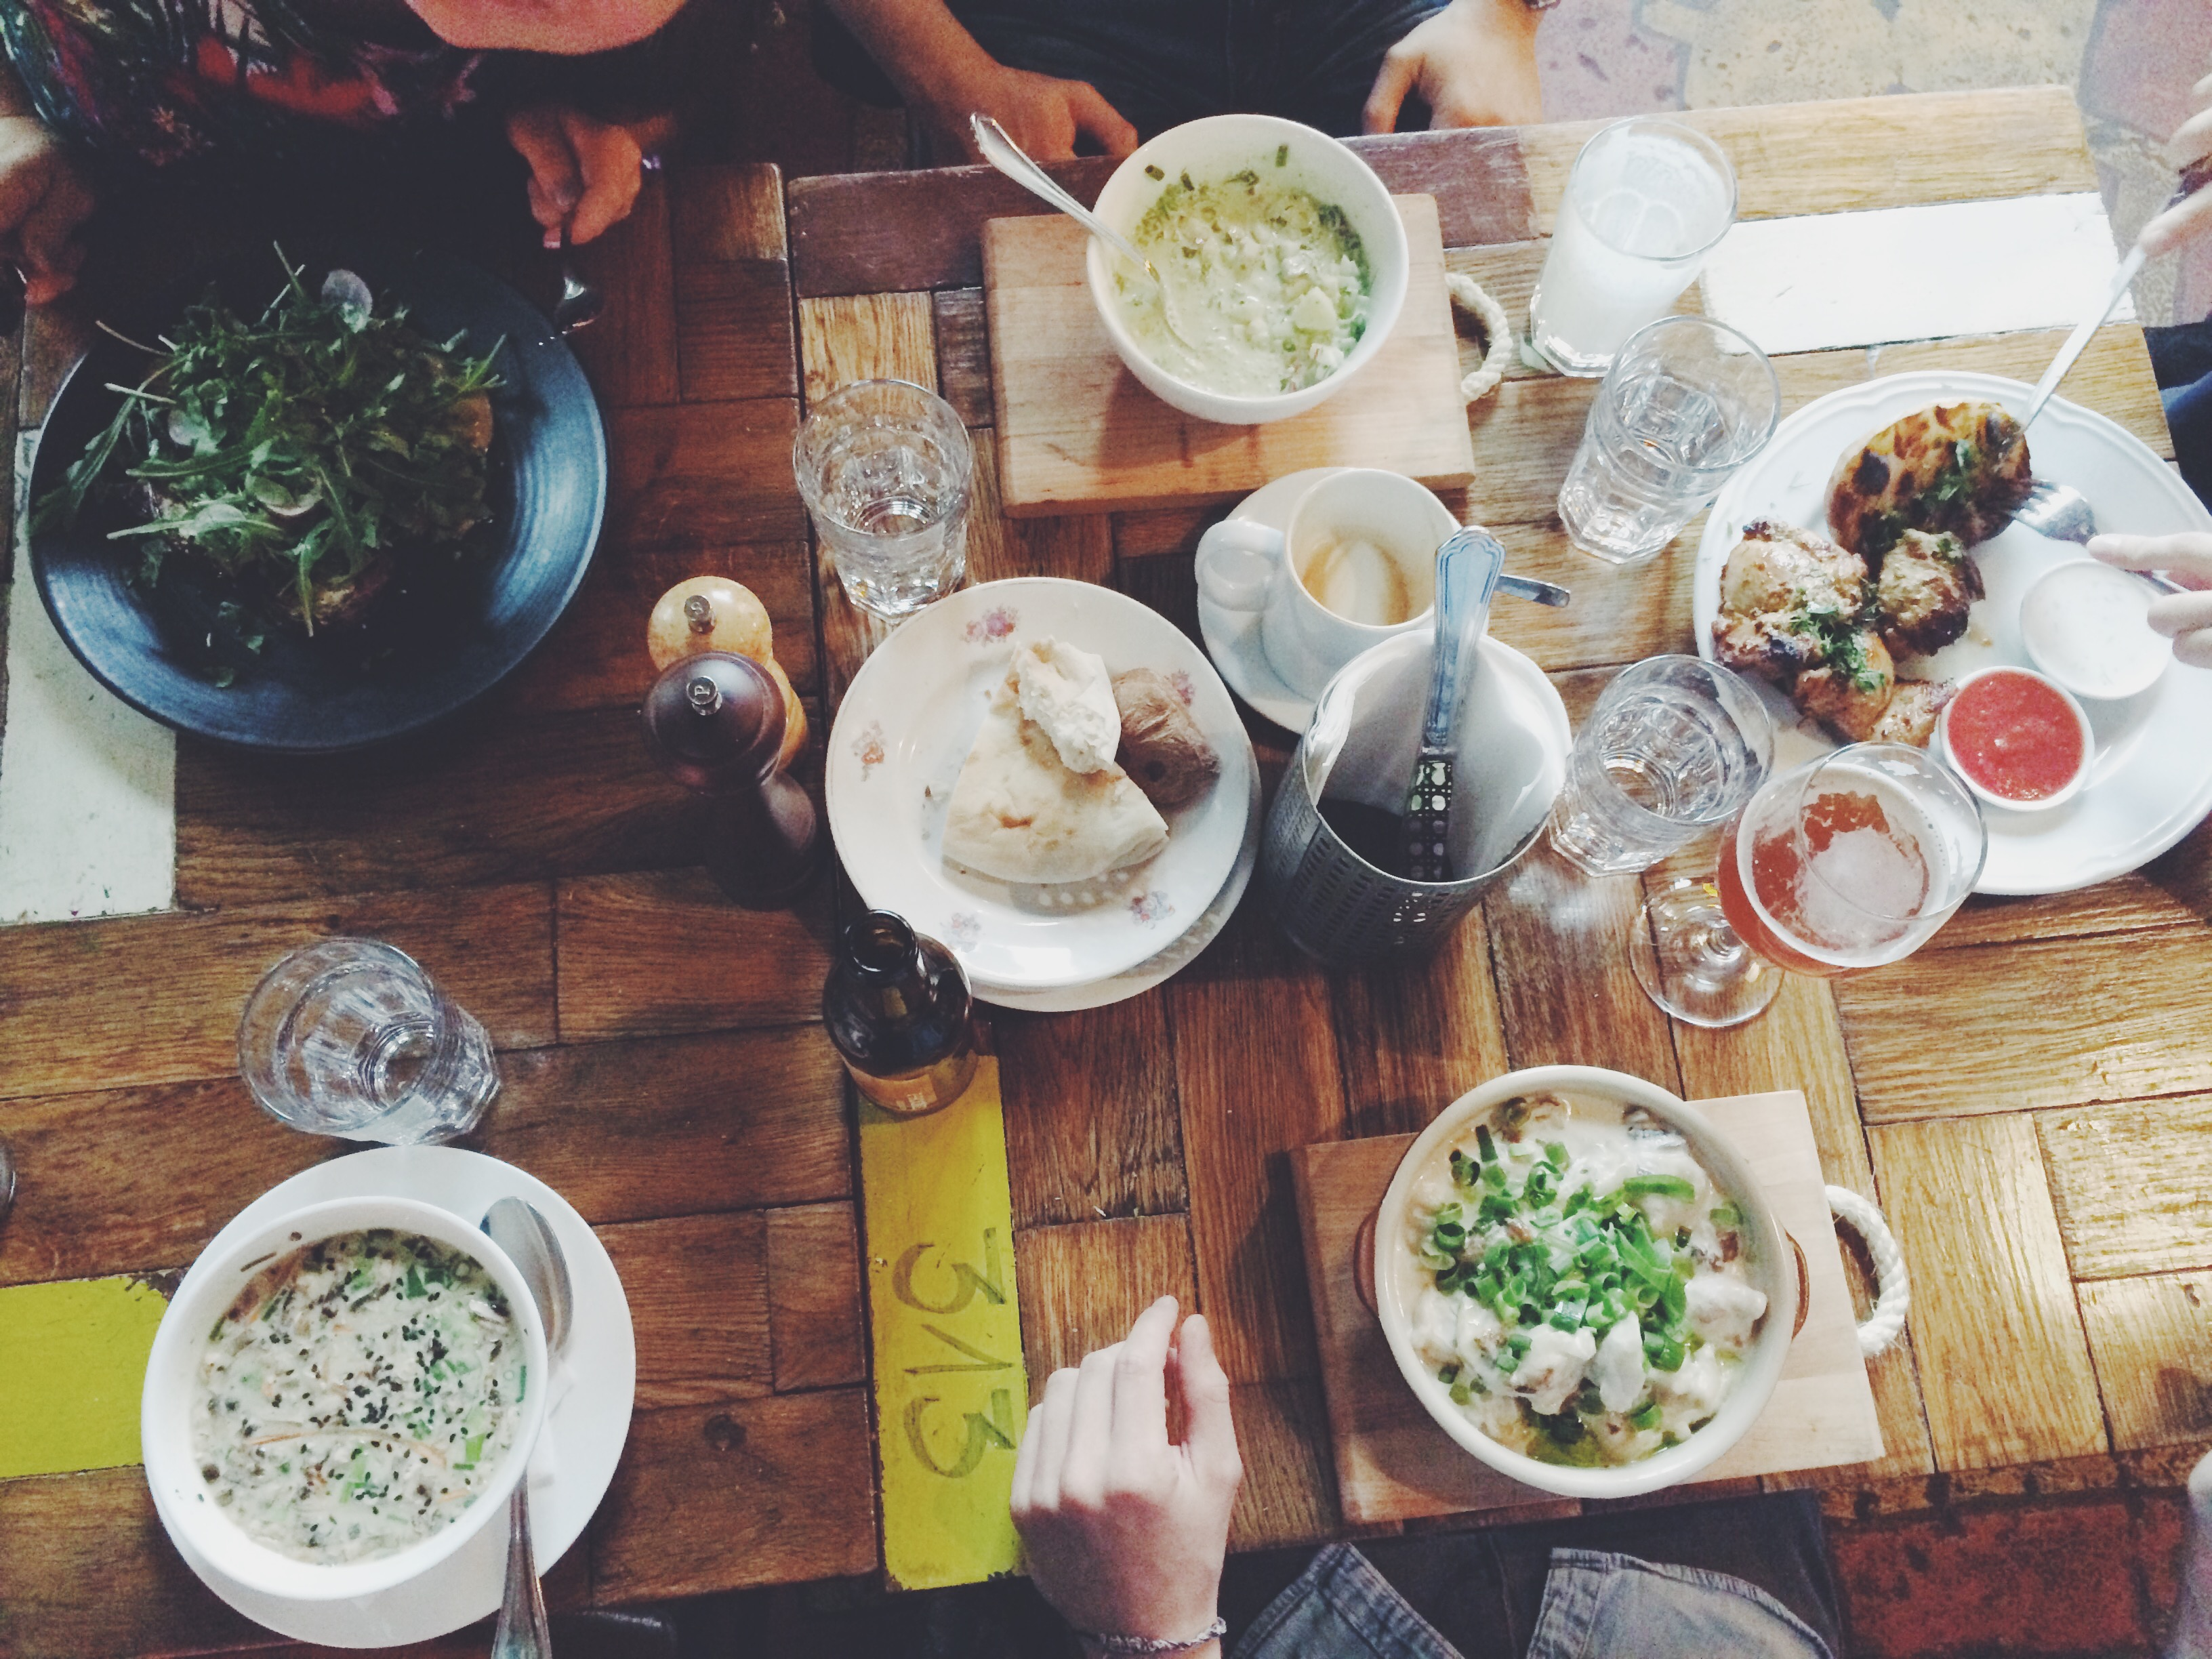 Where to eat in Tallinn: F-Hoone